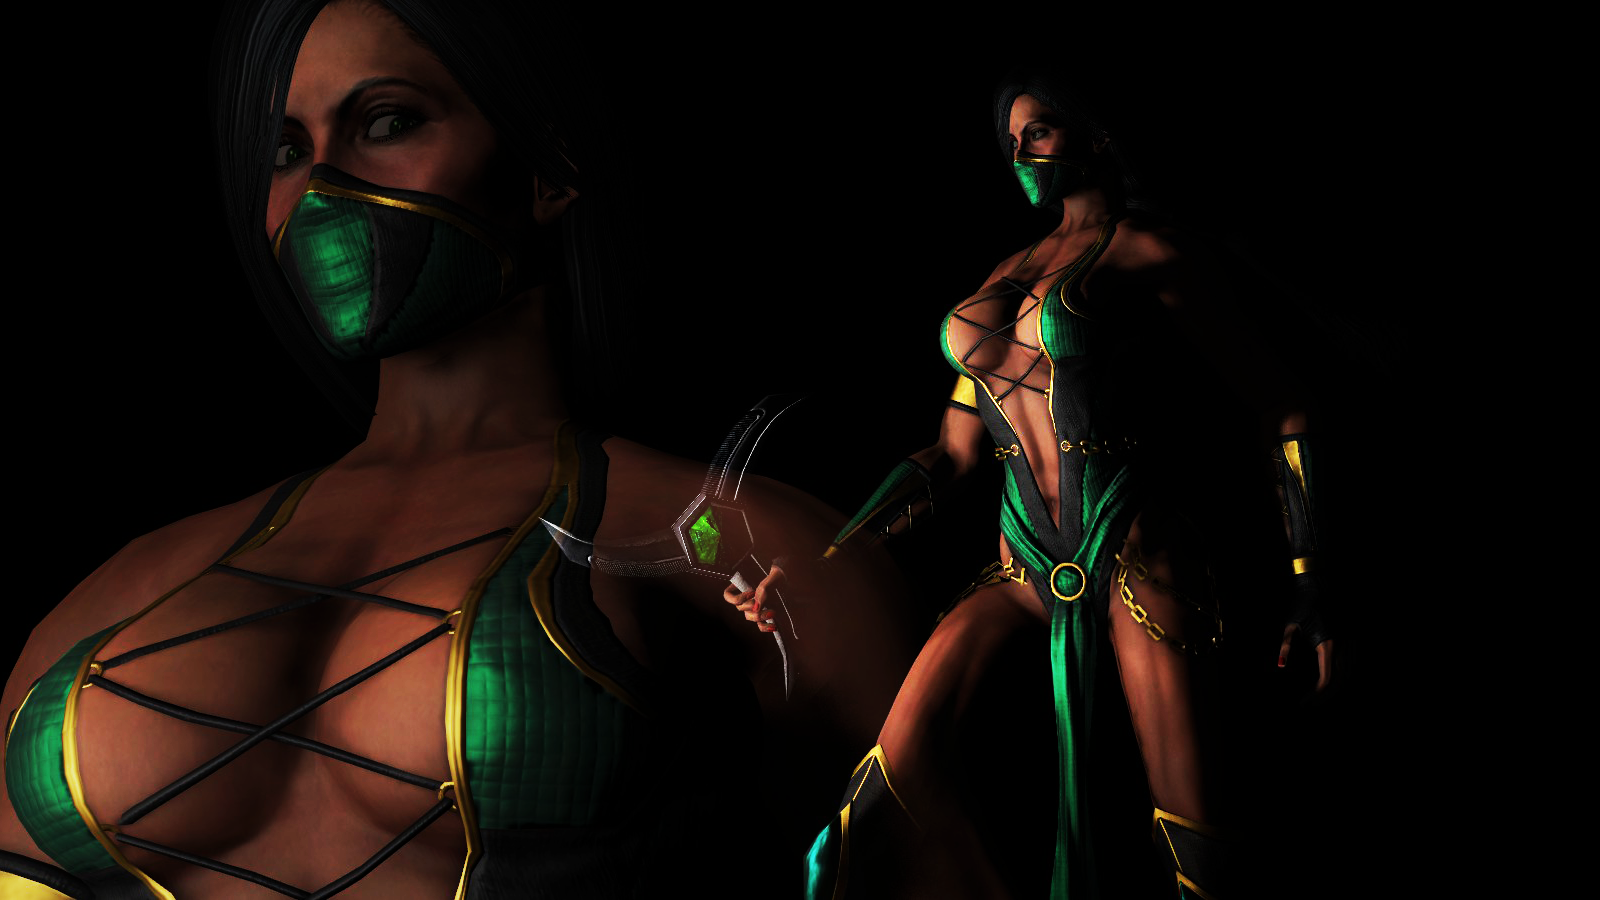 Pics of jade in mortal kombat 9  hentai images